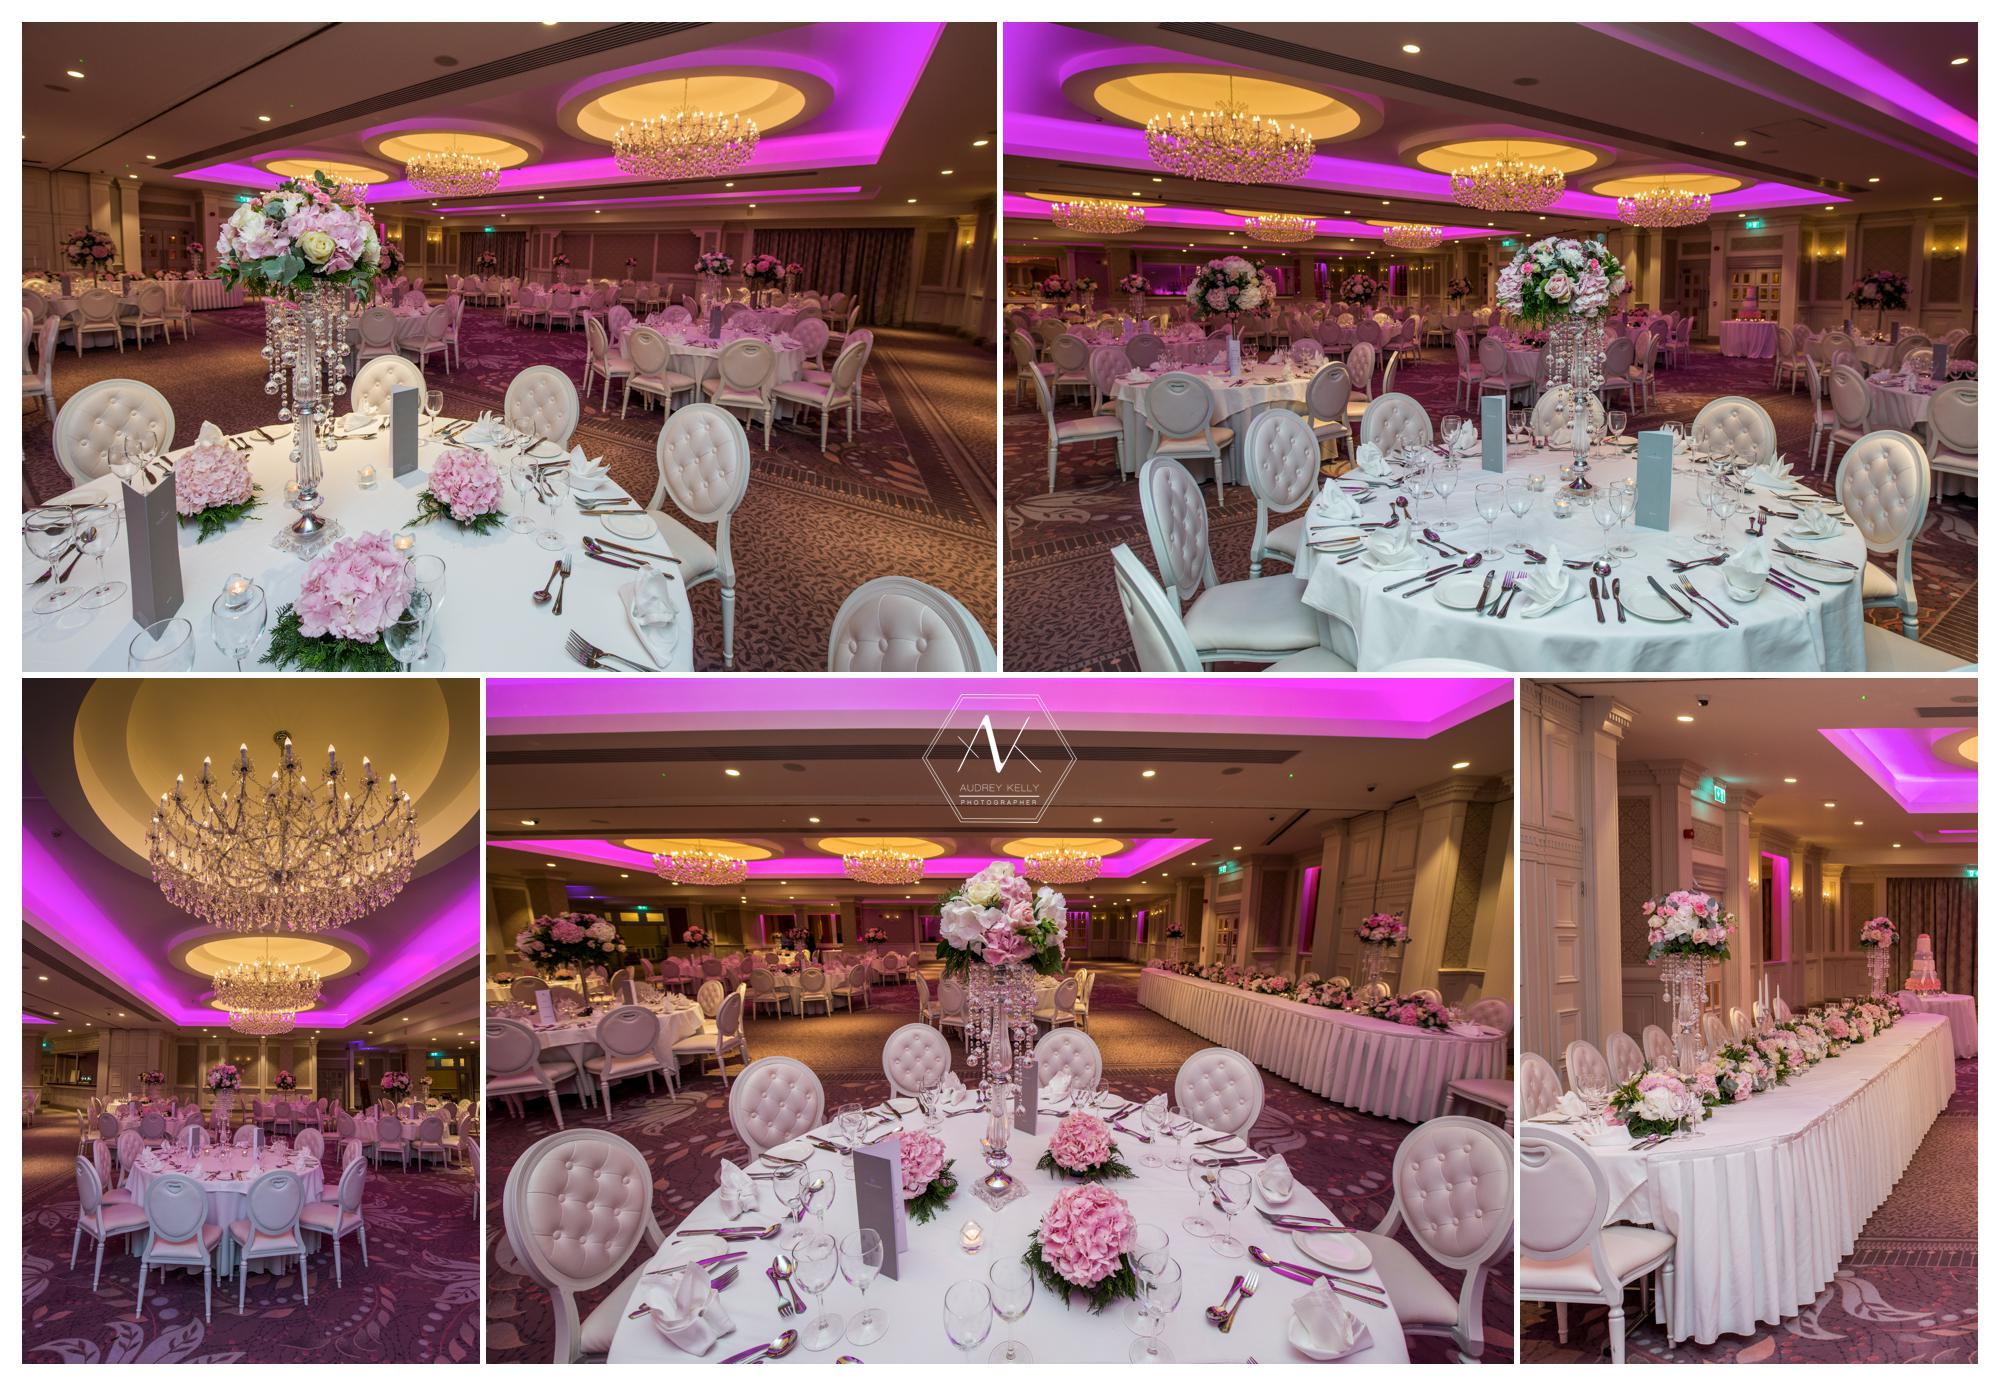 wedding_room_at_slieve_russel_hotel_co_cavan_ireland .jpg